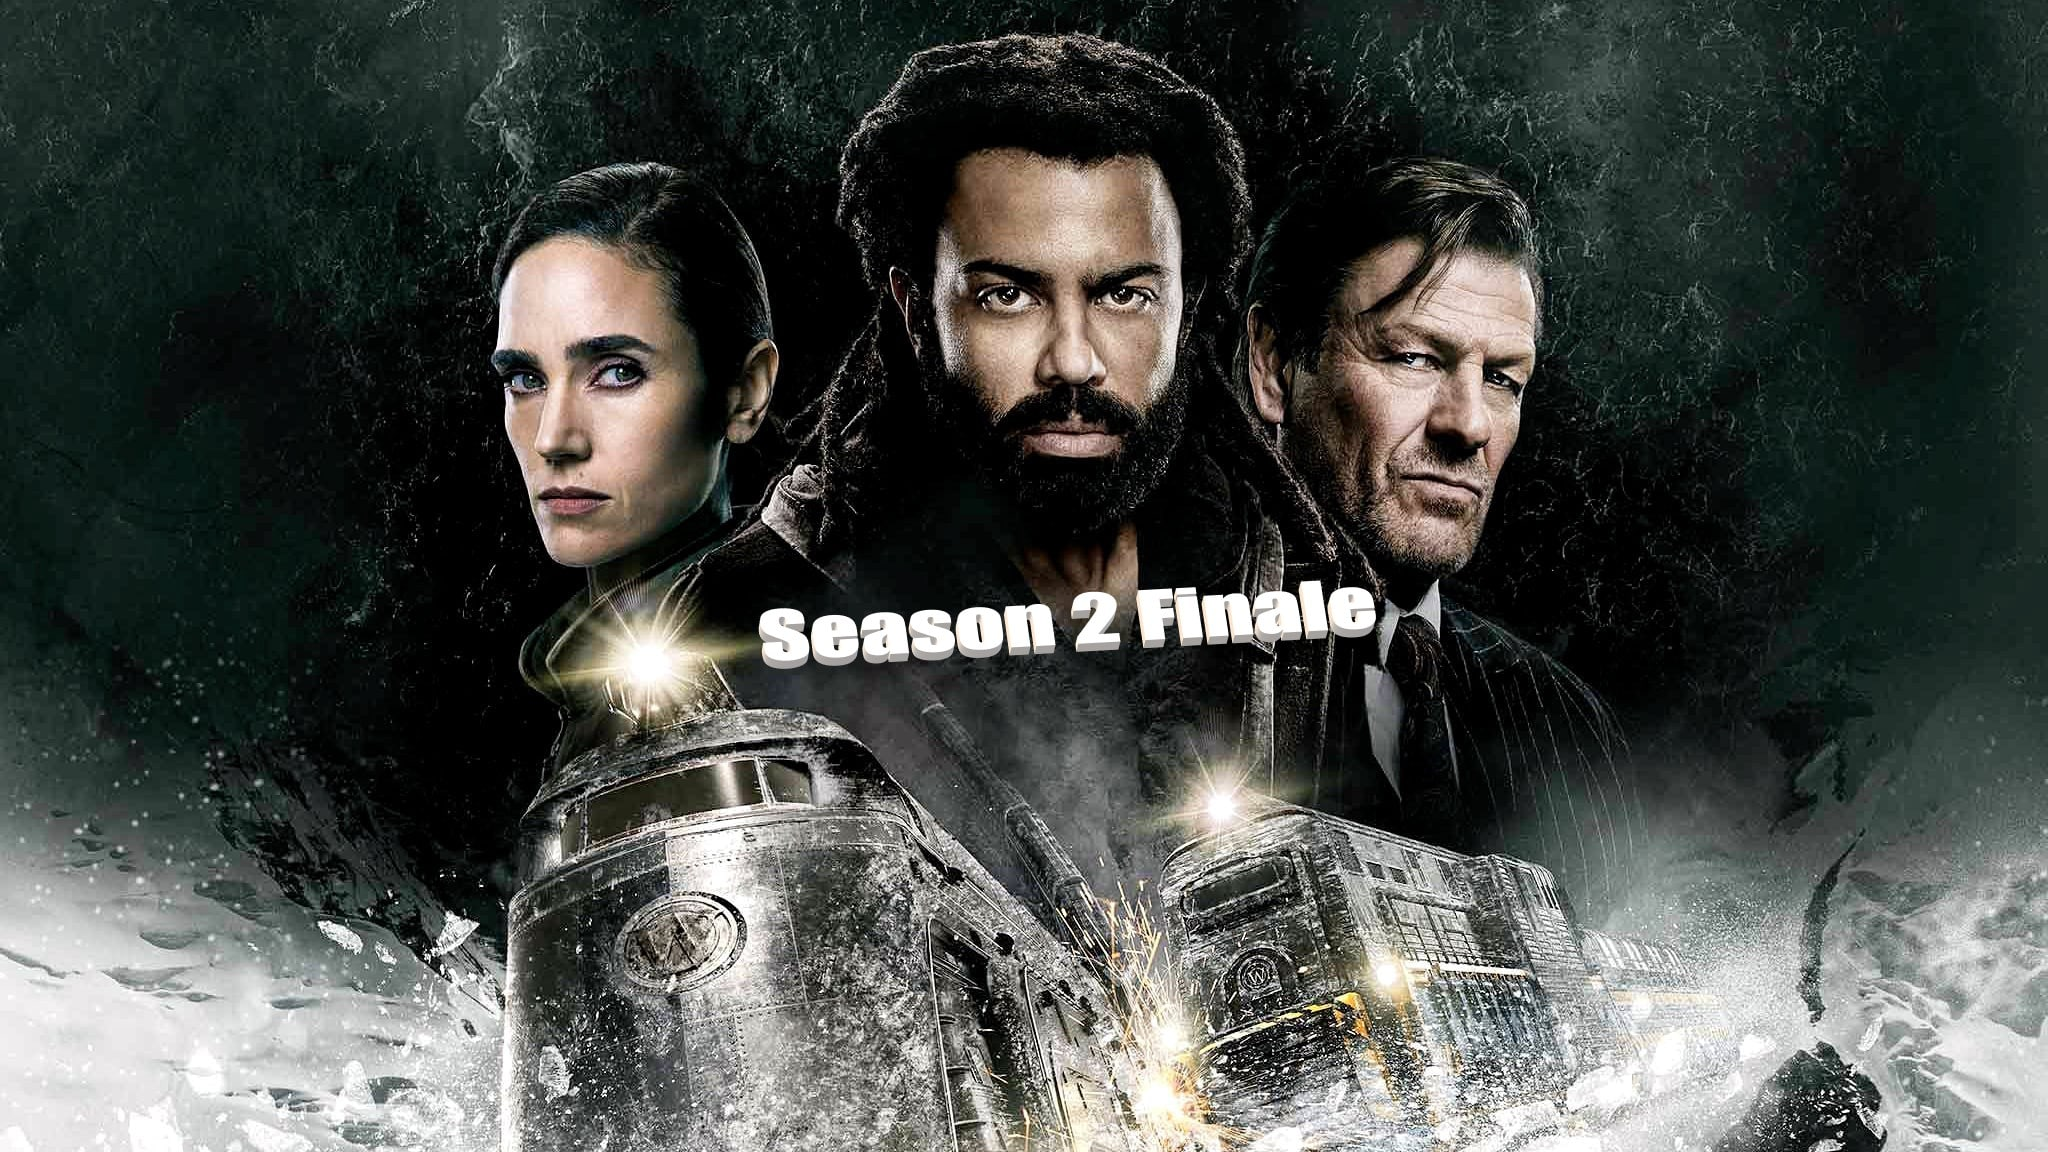 [Review] Snowpiercer: Season 2 Finale Double The Damage